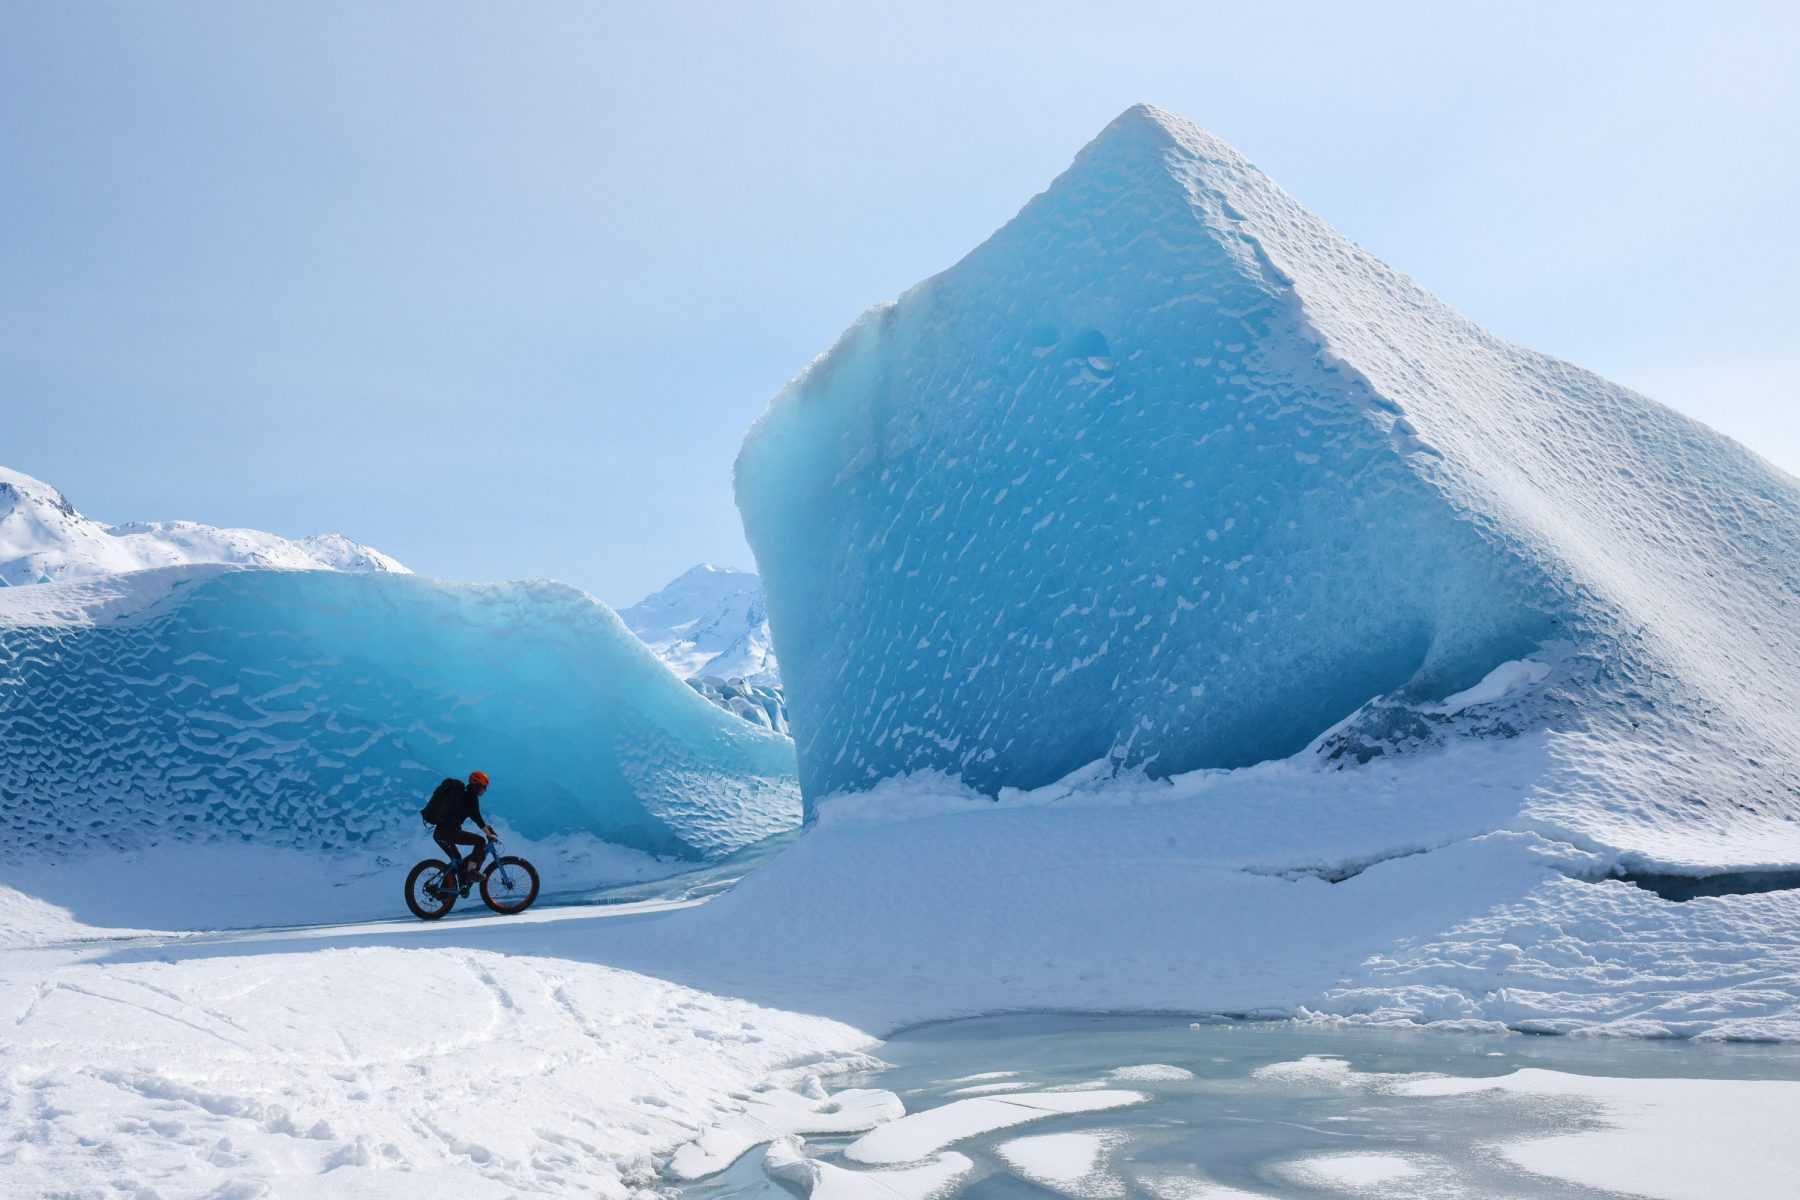 Cori Graves biking between icebergs in the Knik Glacier Canyon